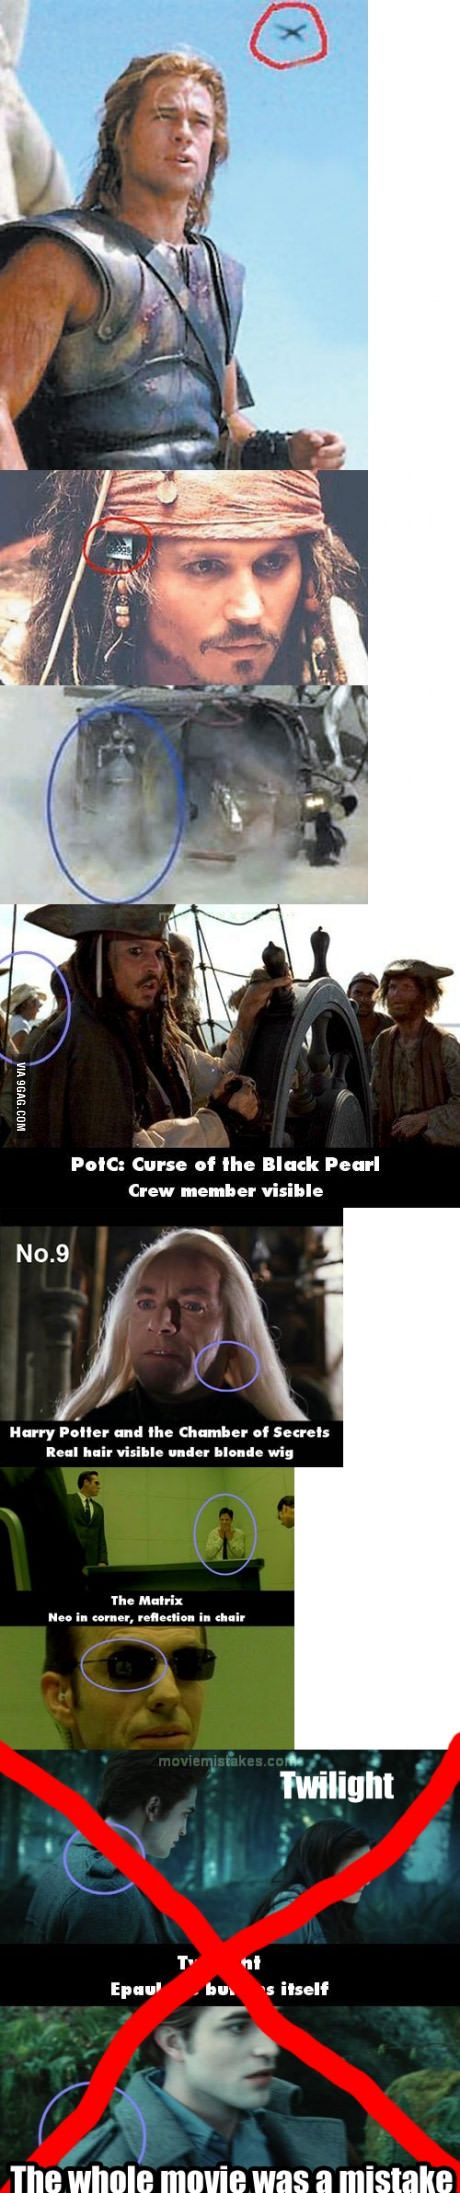 Just some movie mistakes...